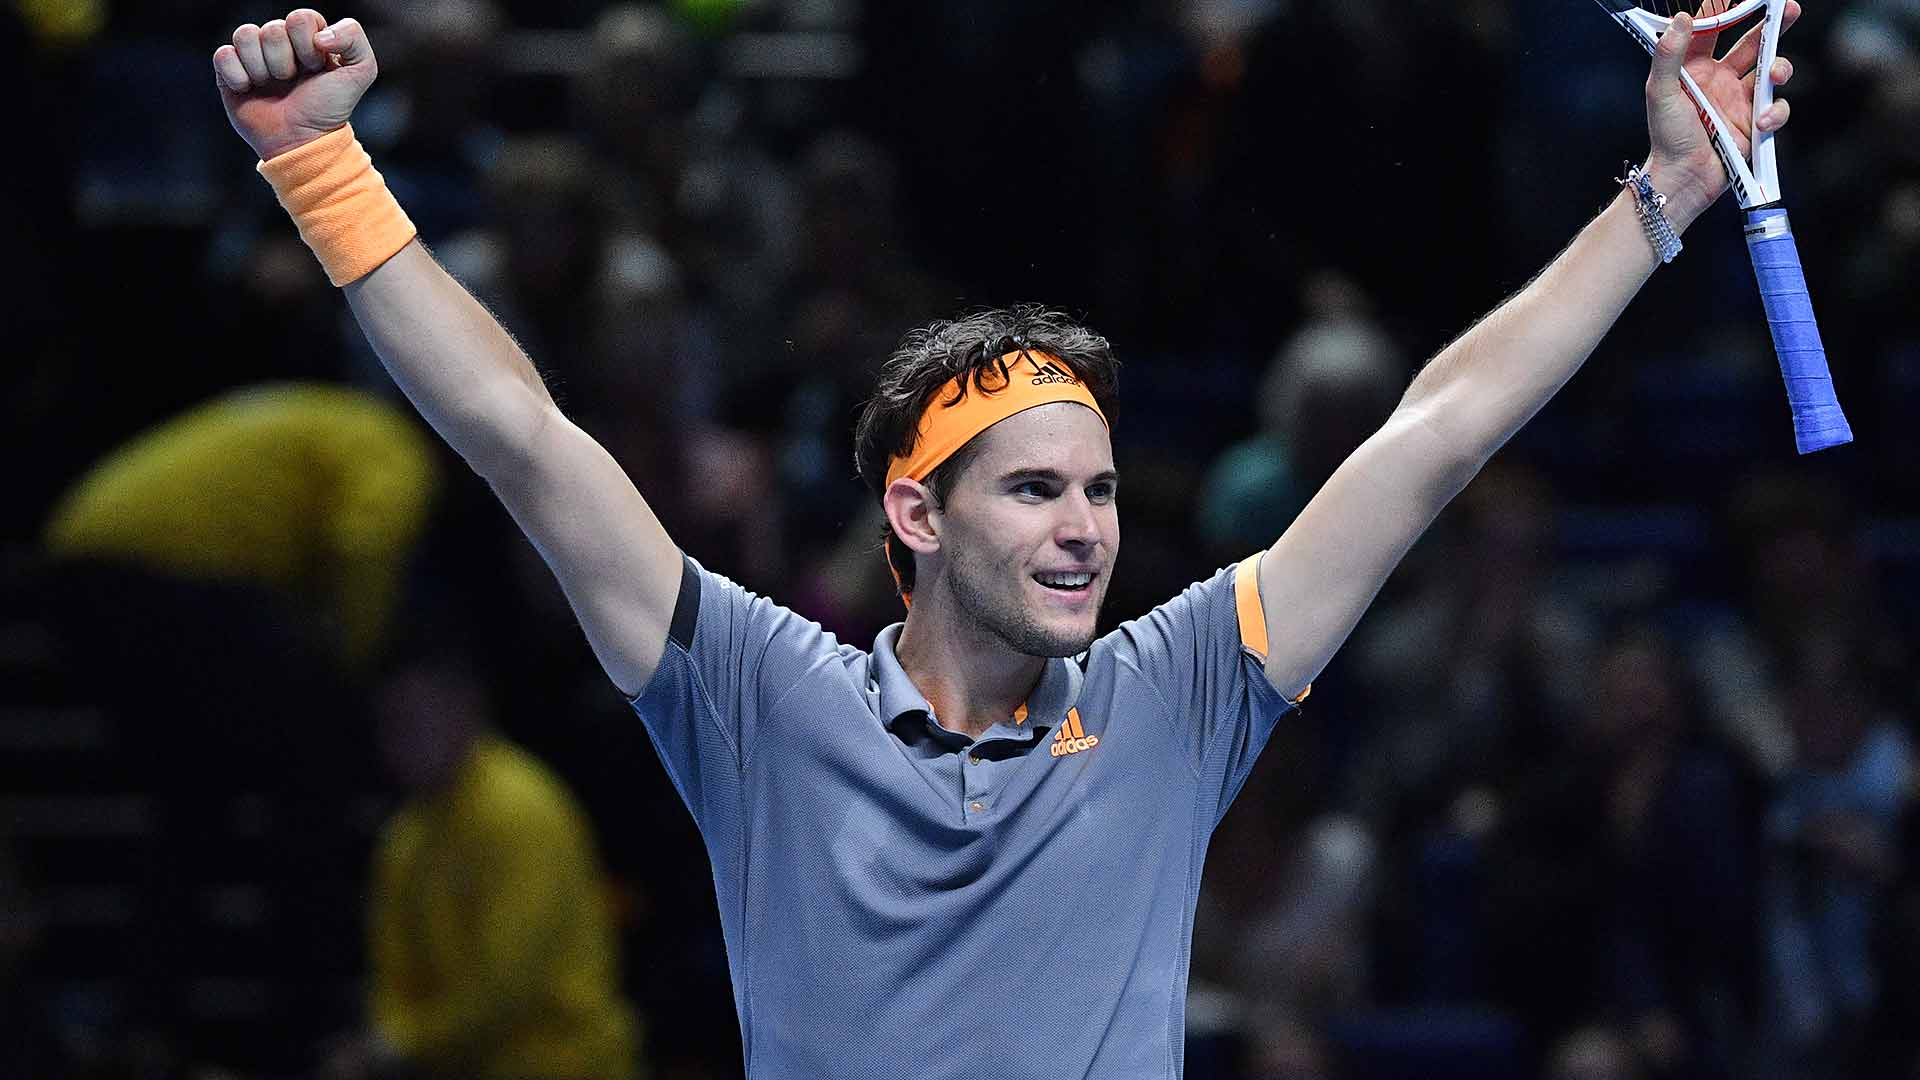 Dominic Thiem reaches his first Nitto ATP Finals title match on Saturday at The O2 in London.